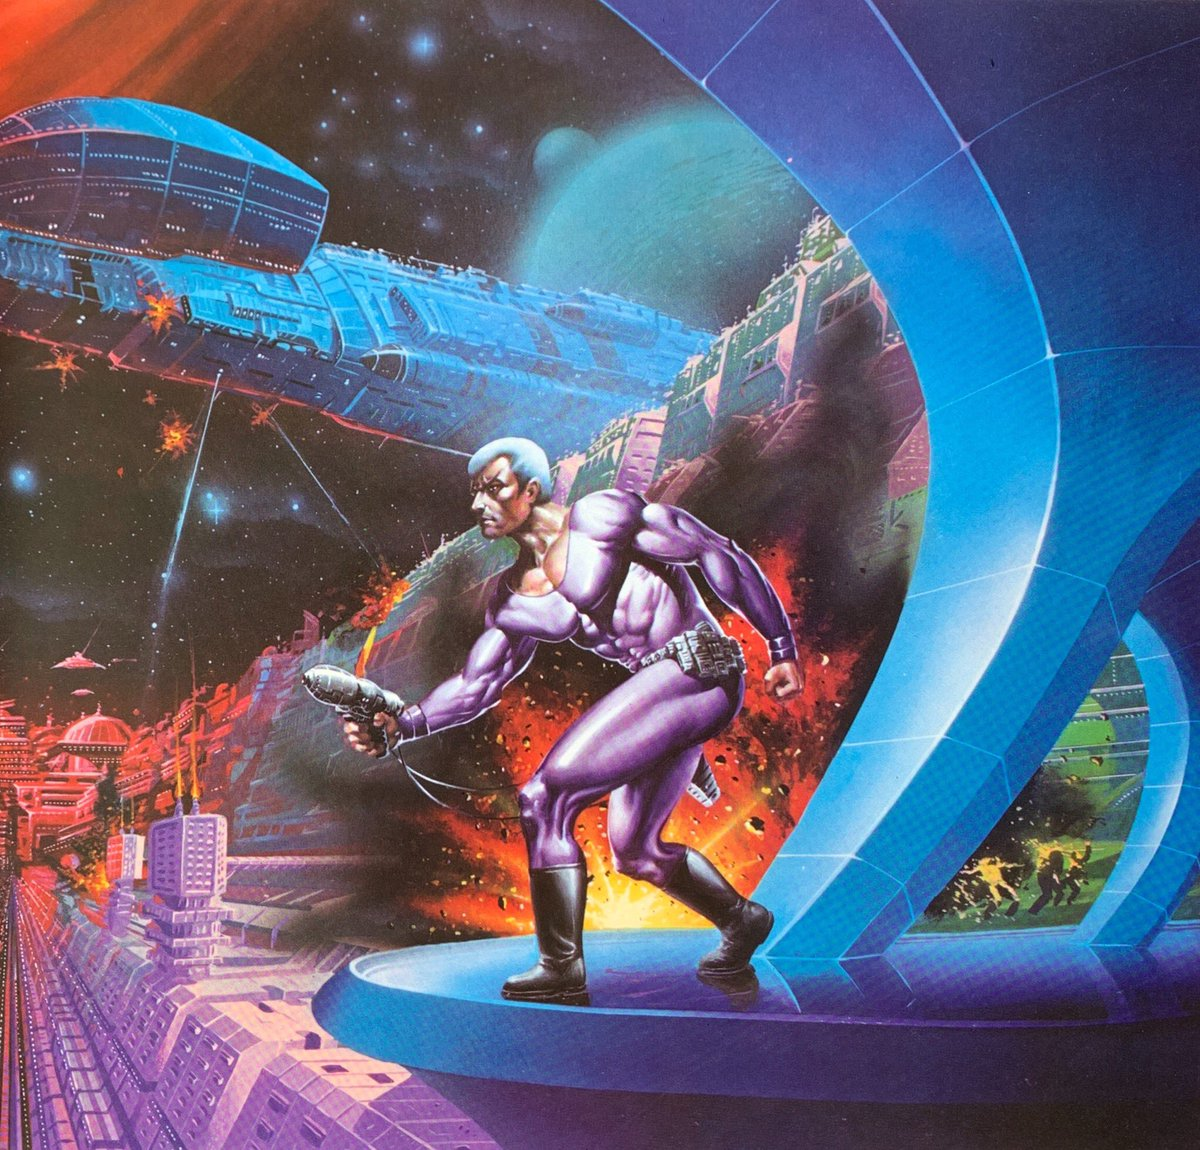 Scifi Art On Twitter Uncredited Illustration From The Immortals Of